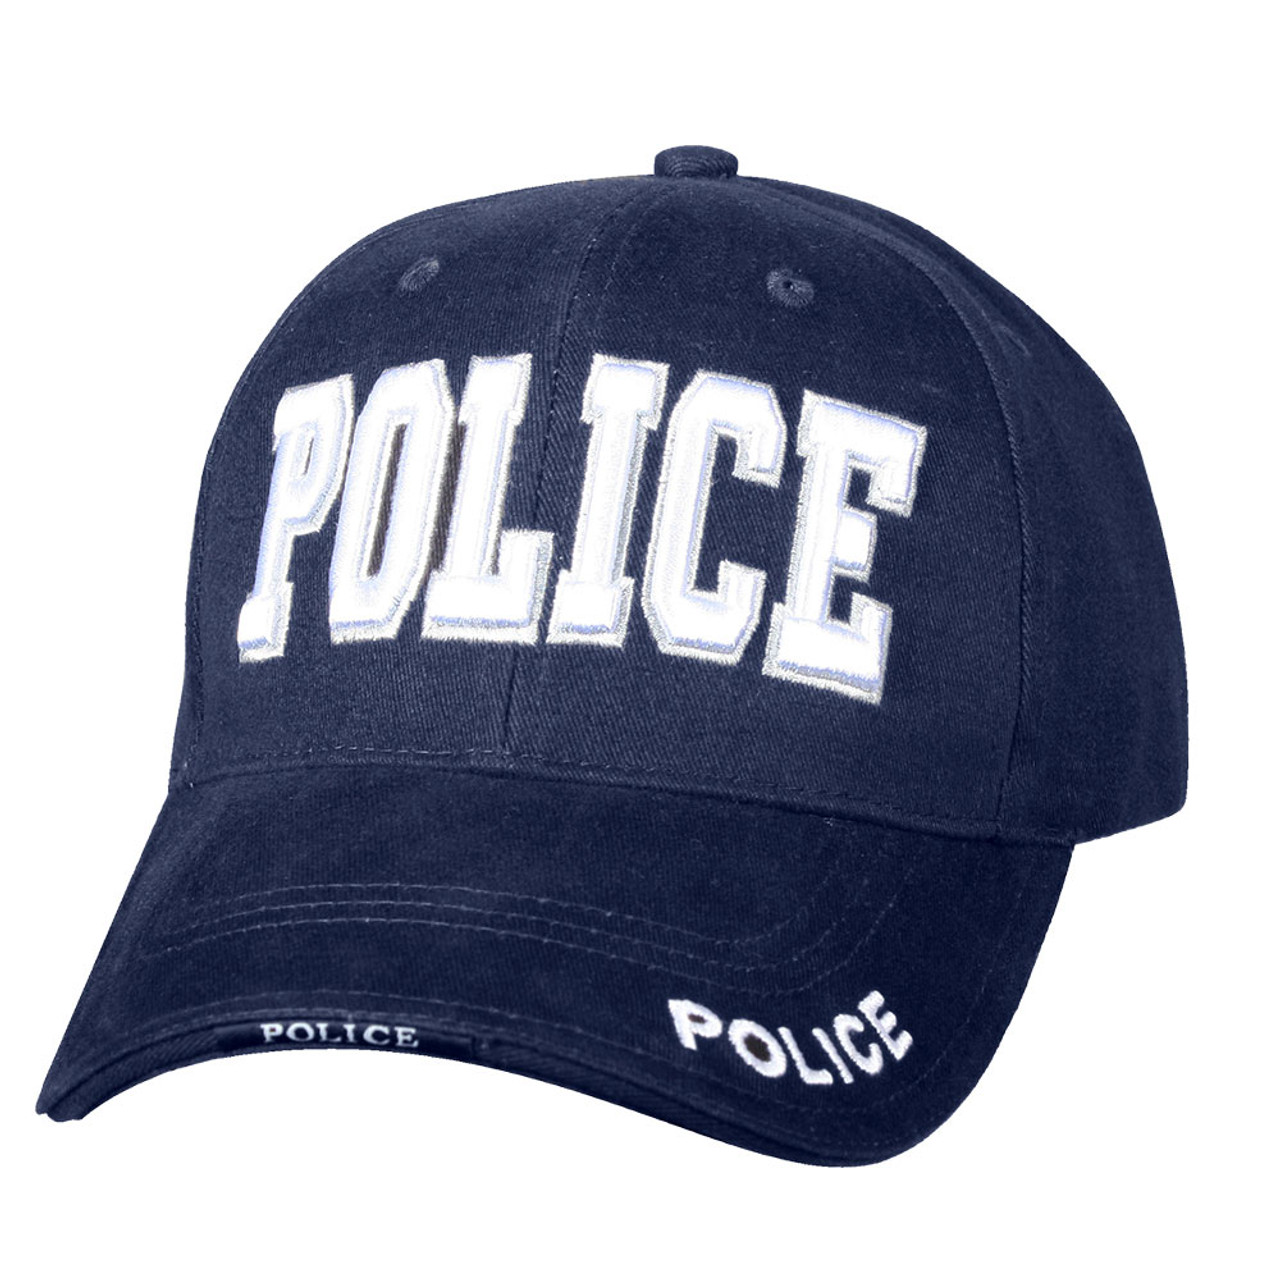 5c3f5e15881 Rothco Police Deluxe Low Profile Cap - Navy - Atlantic Tactical Inc